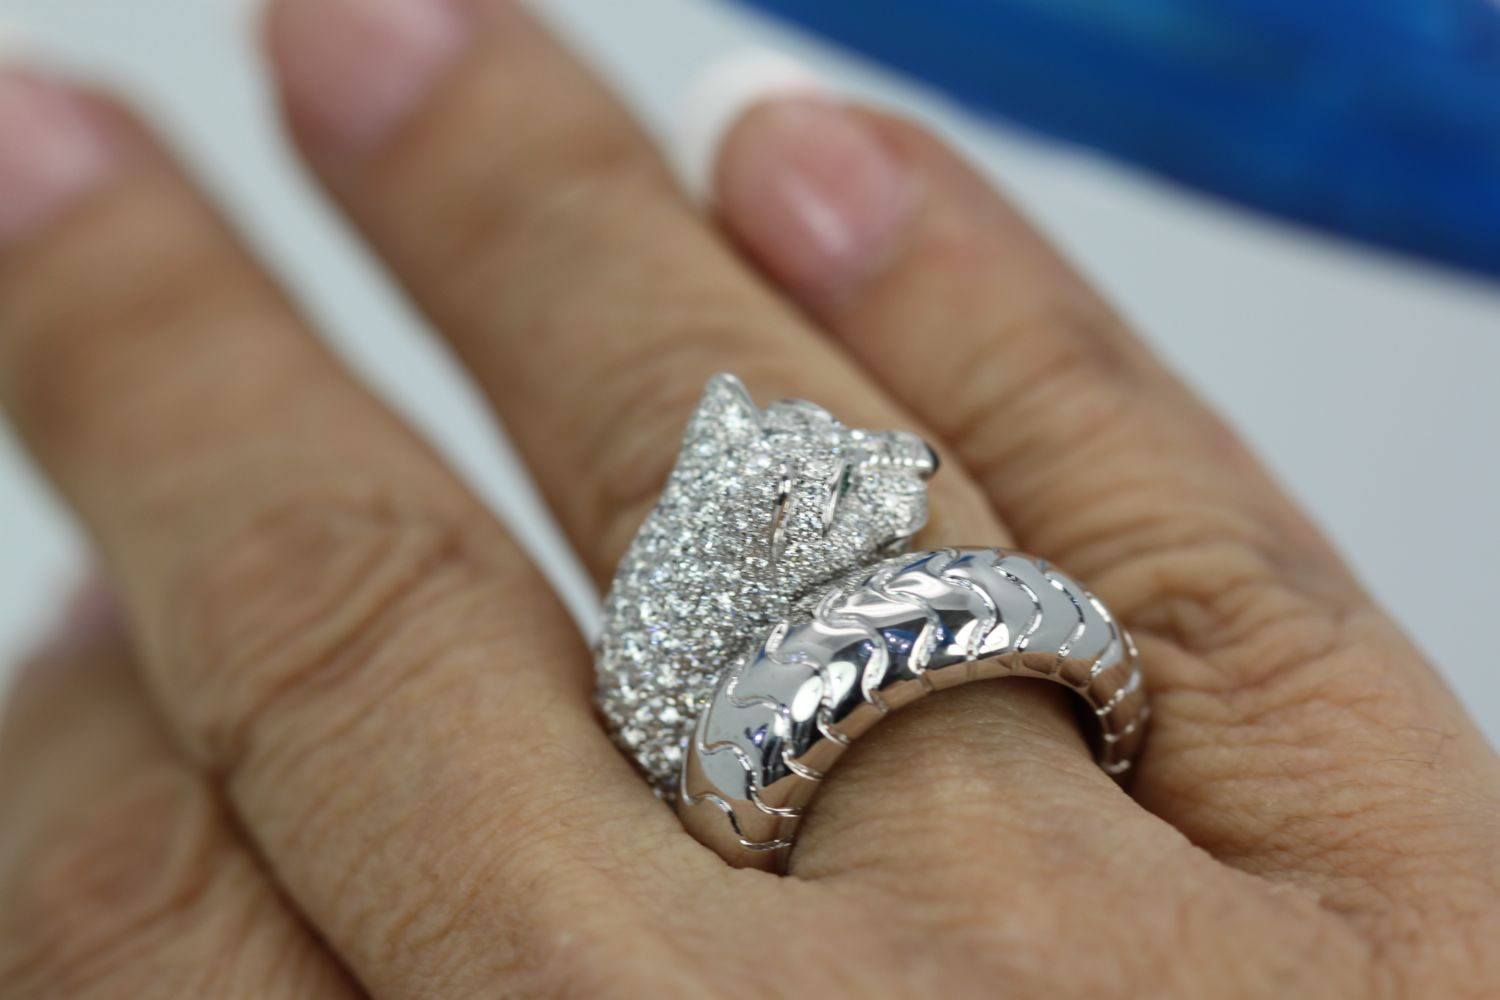 b6c377351976e Cartier Panther Diamond Ring from the Panthere de Cartier Collection